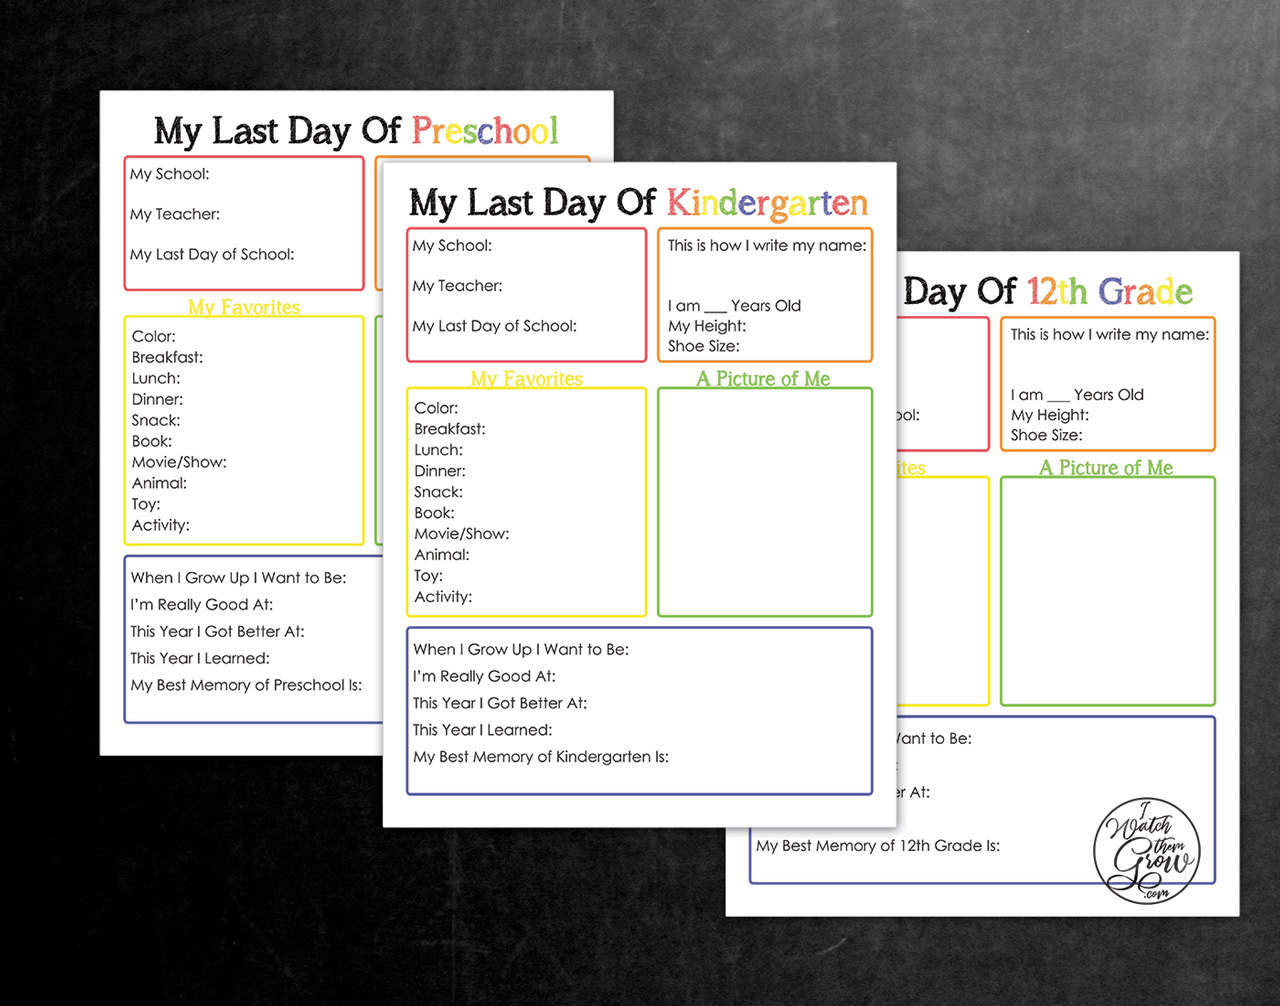 image about Last Day of School Printable named Printable Ultimate Working day of University Job interview - I View Them Mature